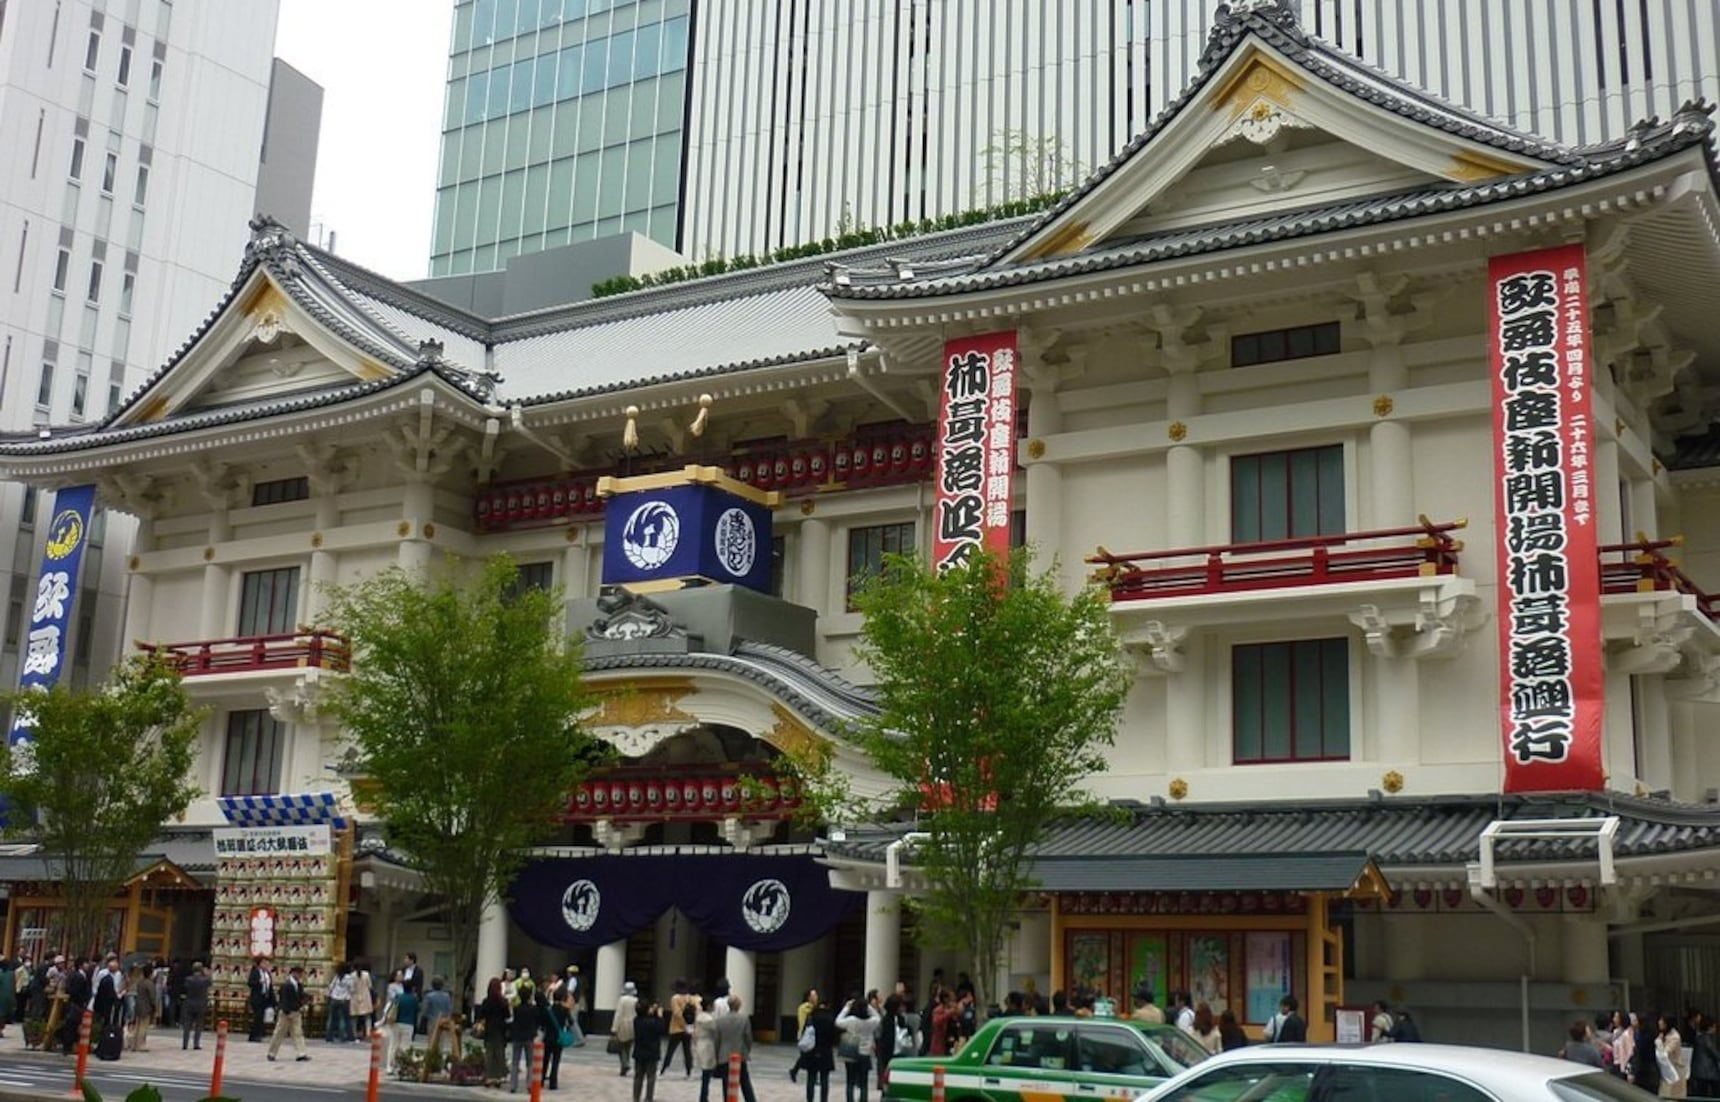 Tour Reconstructed Kabukiza Without a Ticket